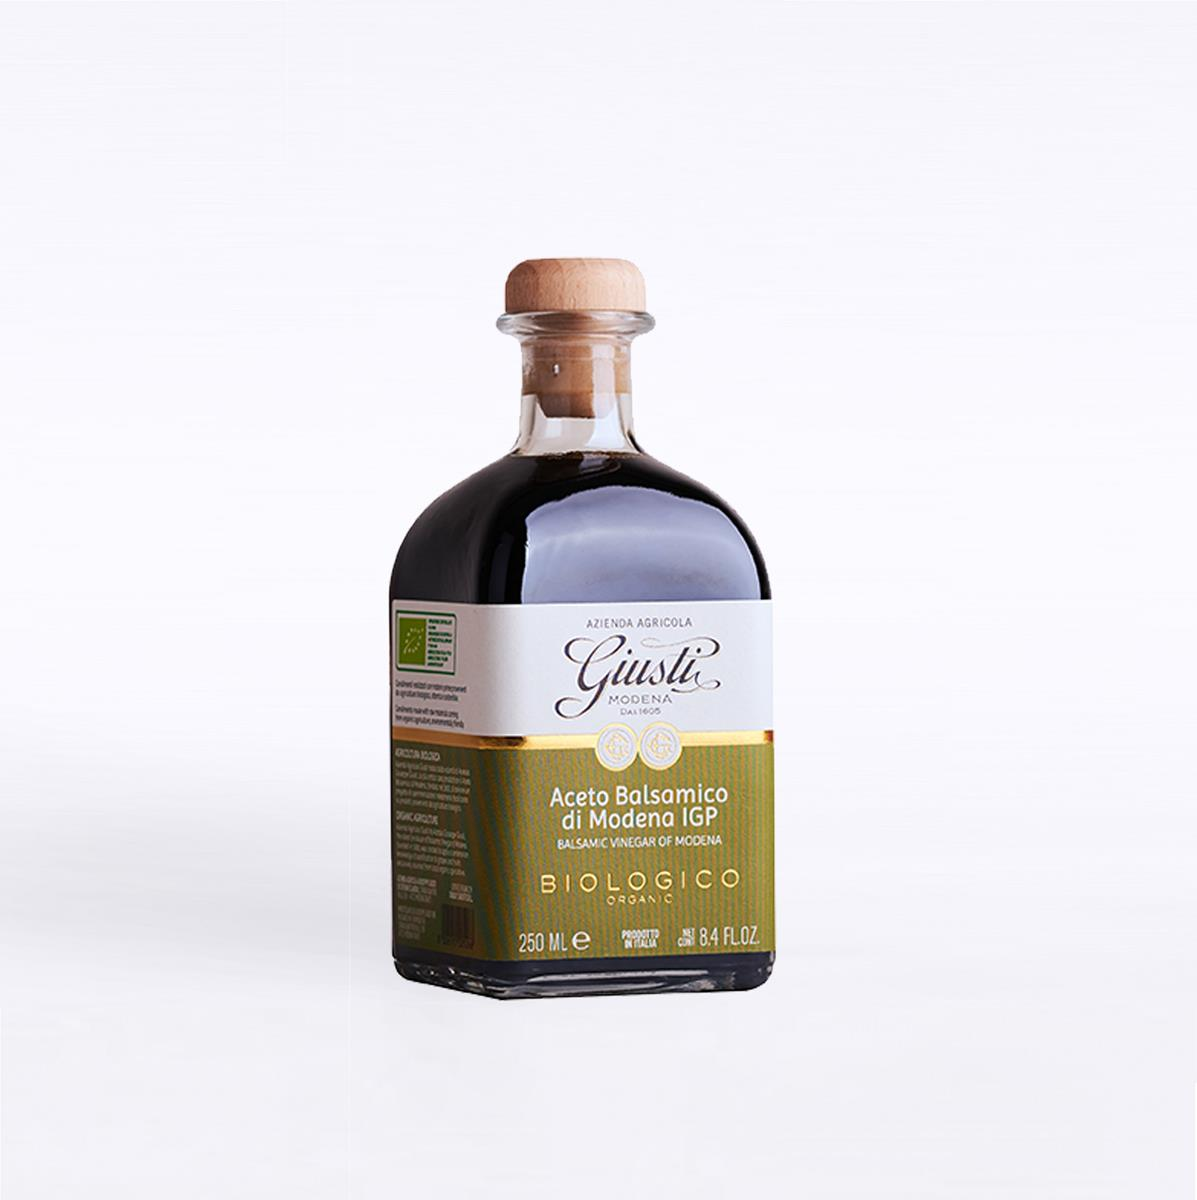 photo Aceto Balsamico di Modena IGP - Biologico - 2 Sigilli - 250 ml